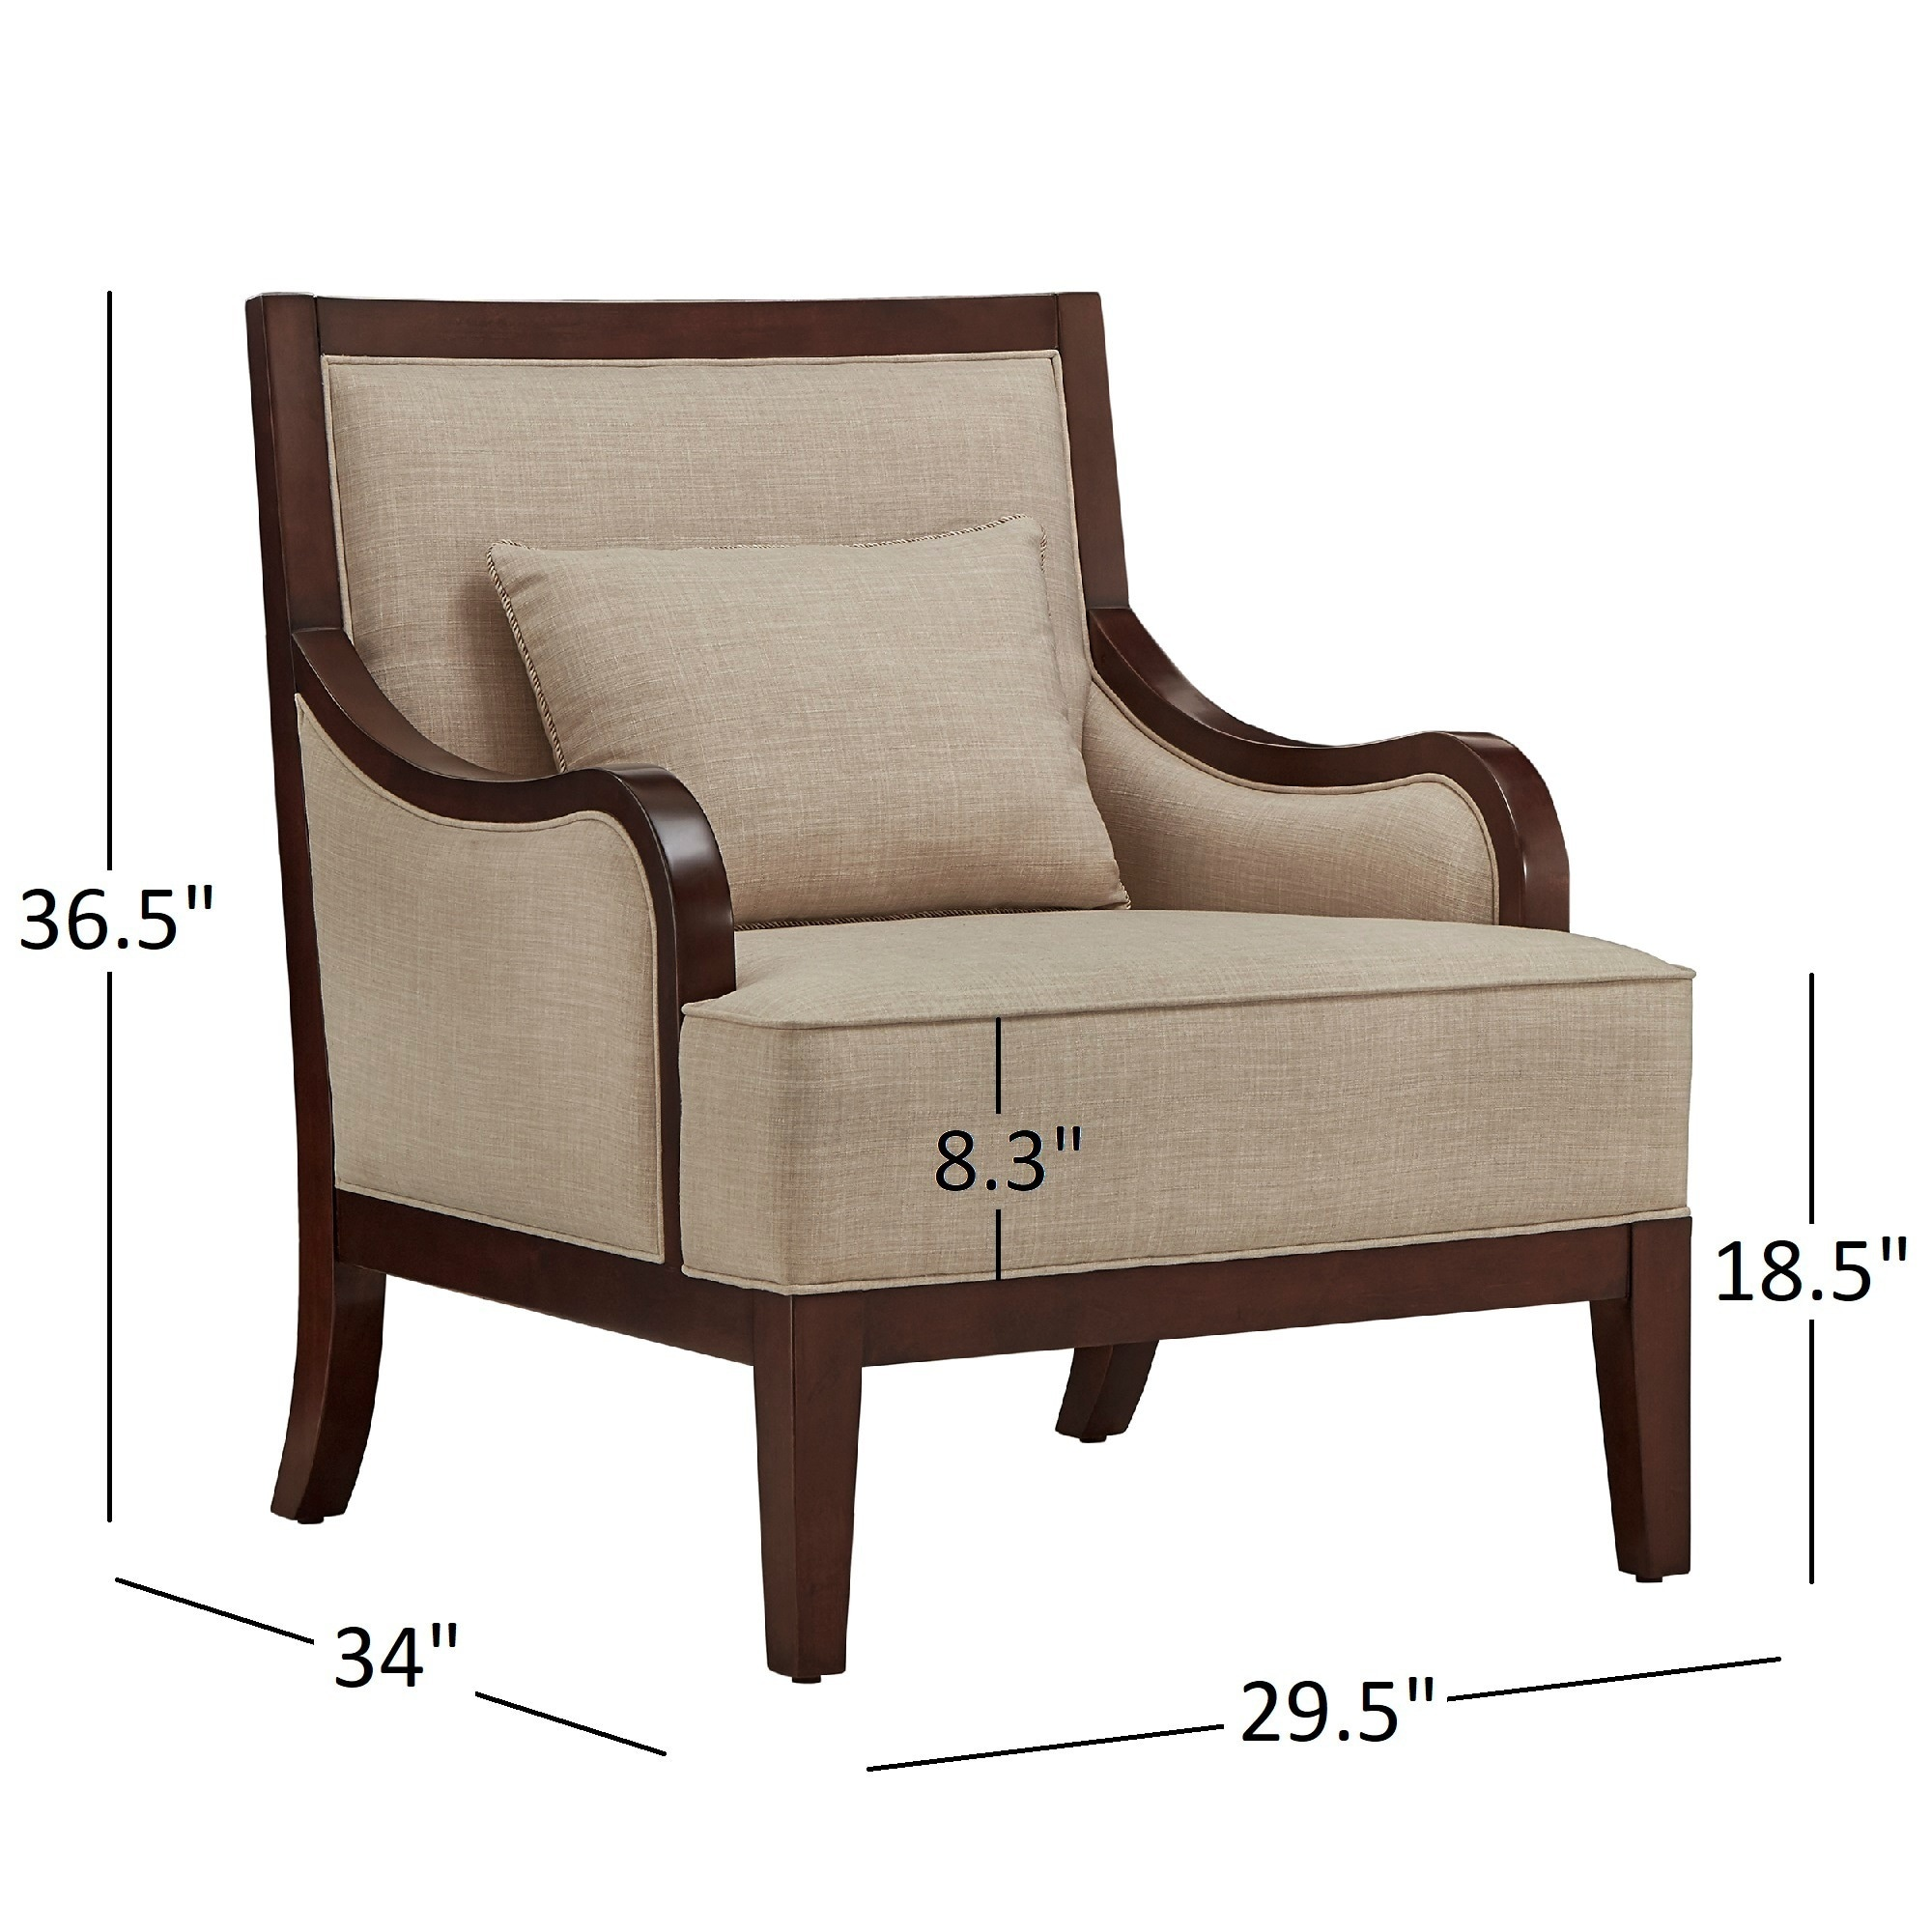 Delightful Brenda Espresso Wood Transitional Accent Chair By INSPIRE Q Classic   Free  Shipping Today   Overstock   23594561